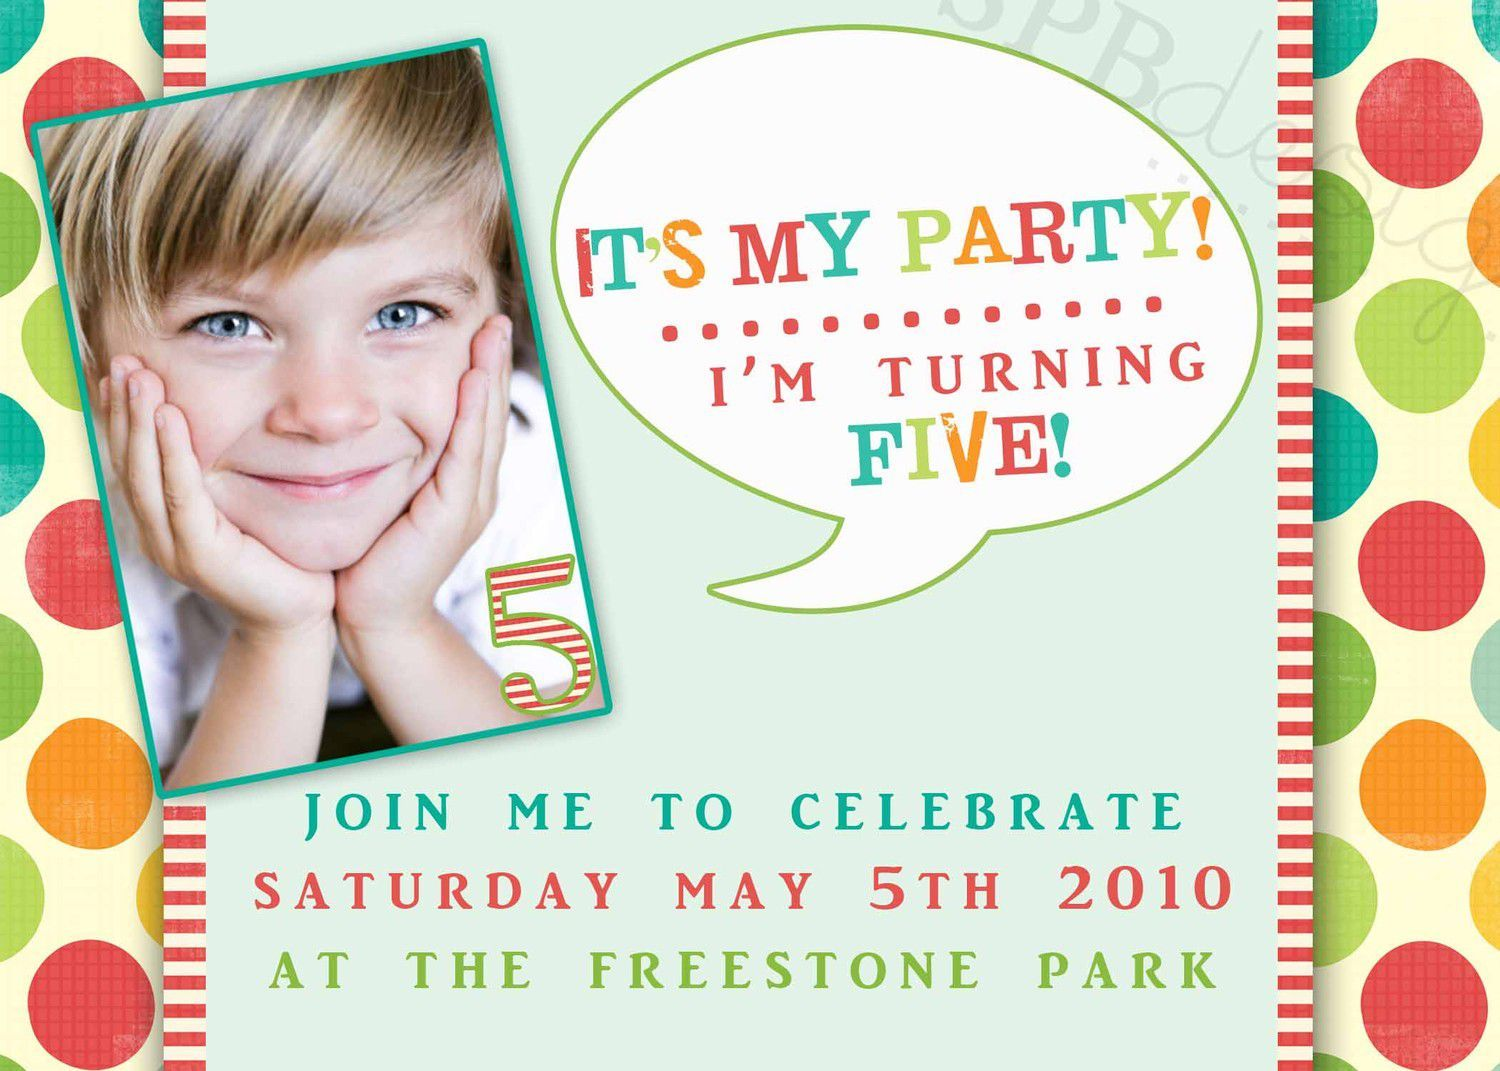 Birthday Invitation Wording For Year Old Boy Birthday - Birthday invitation wording for a one year old